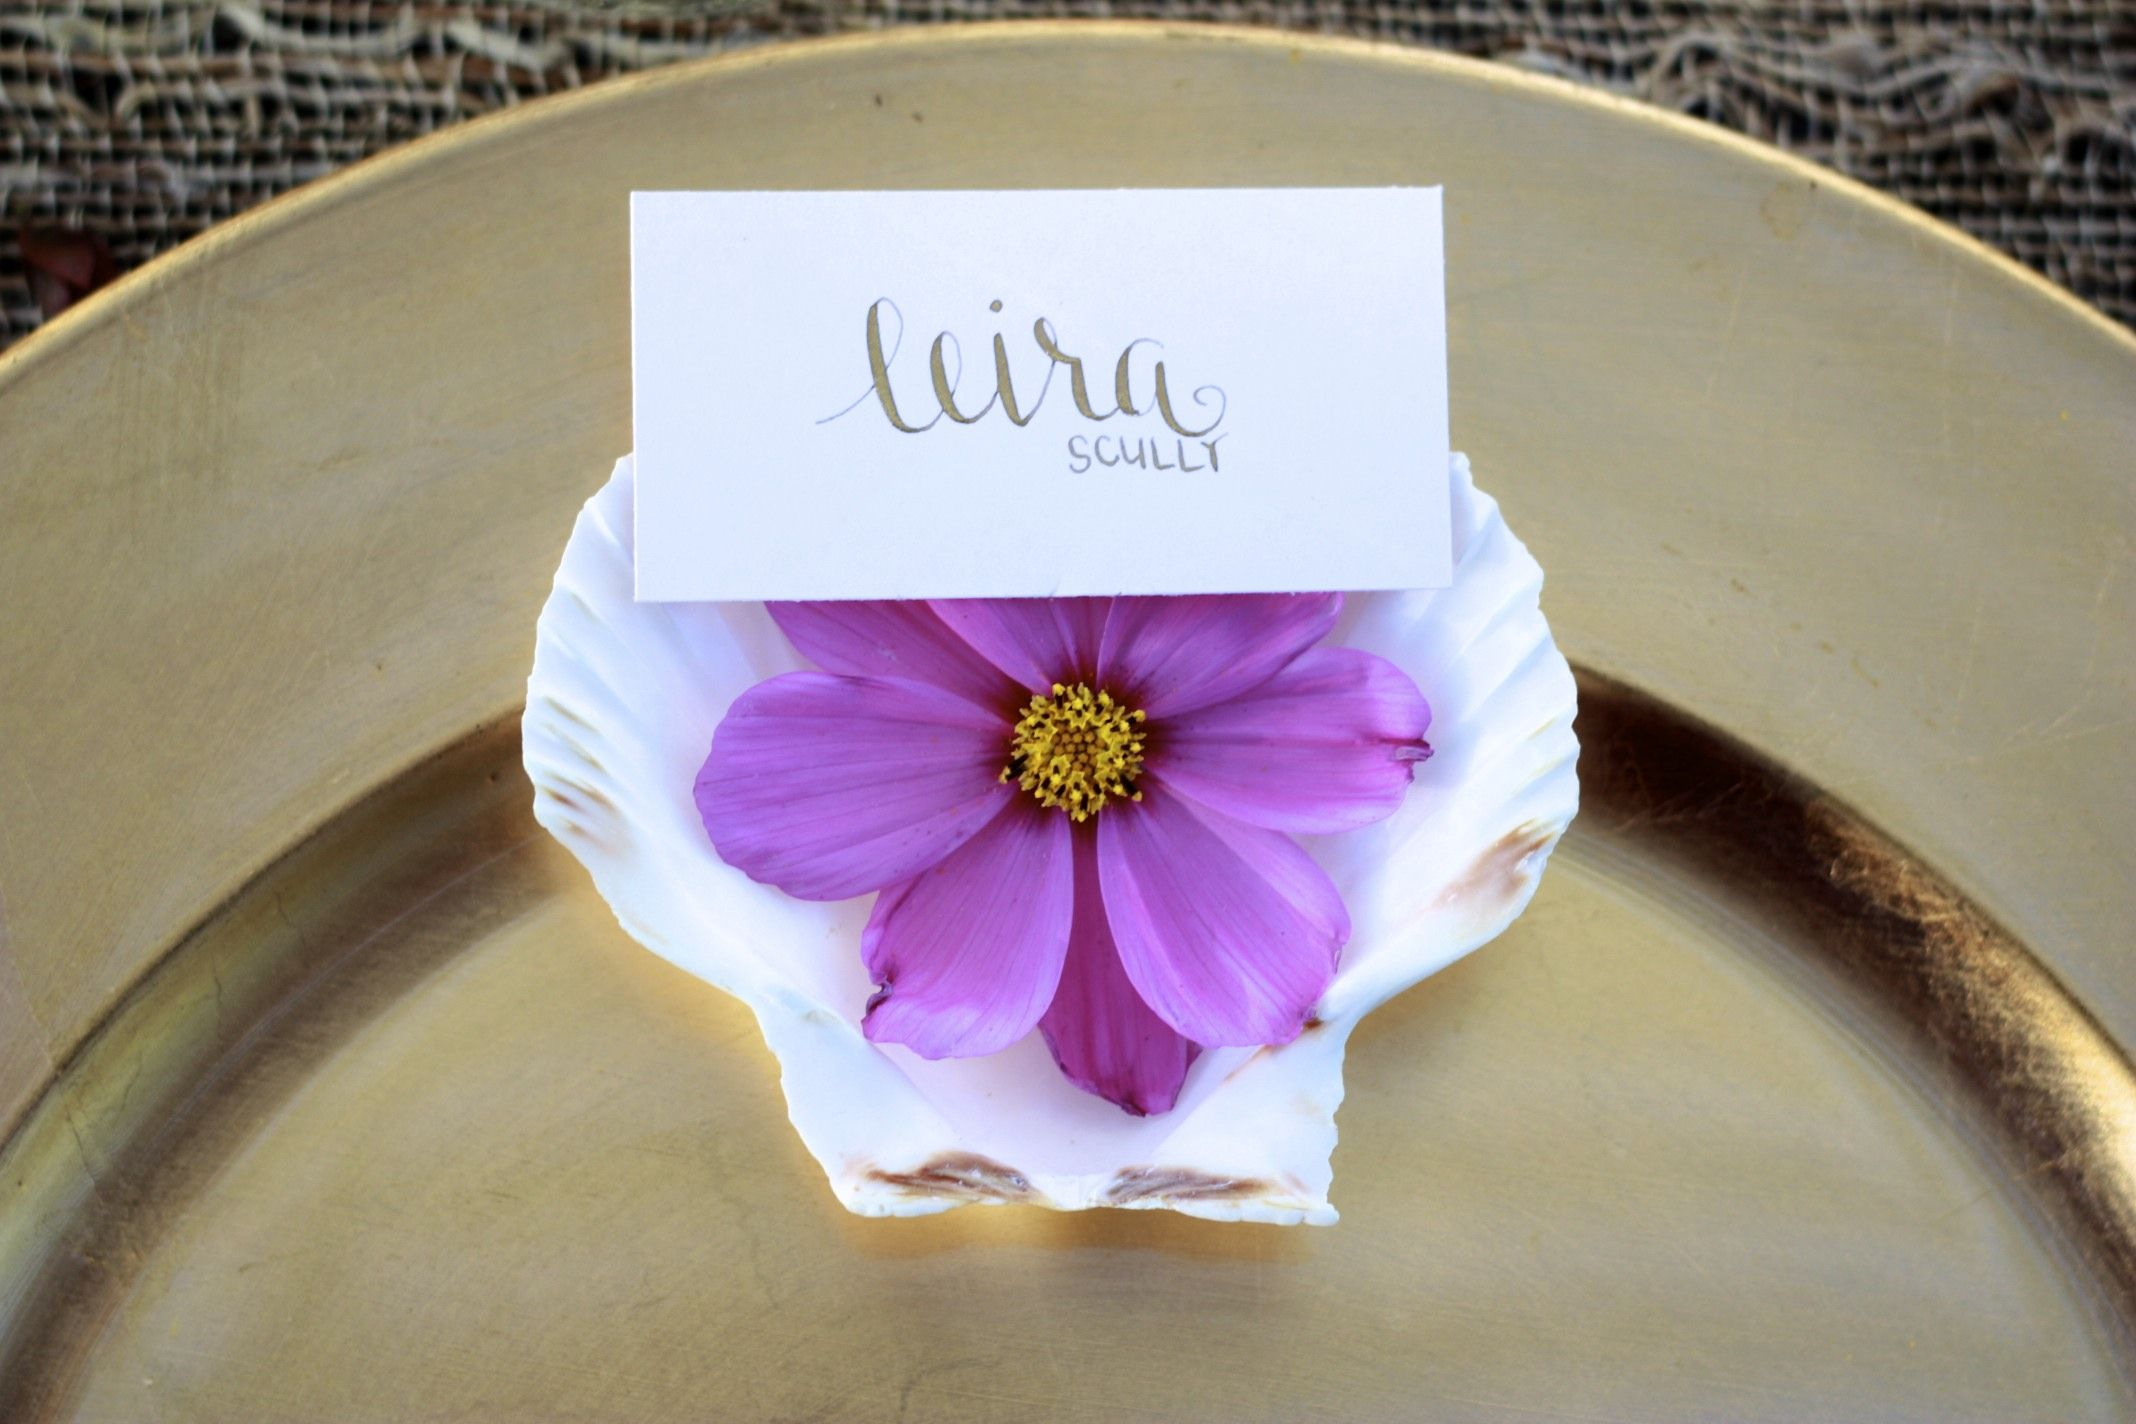 Dinner Party Name Ideas Part - 34: Wedding Place Cards - Escort Card - Gold / Black Calligraphy - Dinner Party  - Name